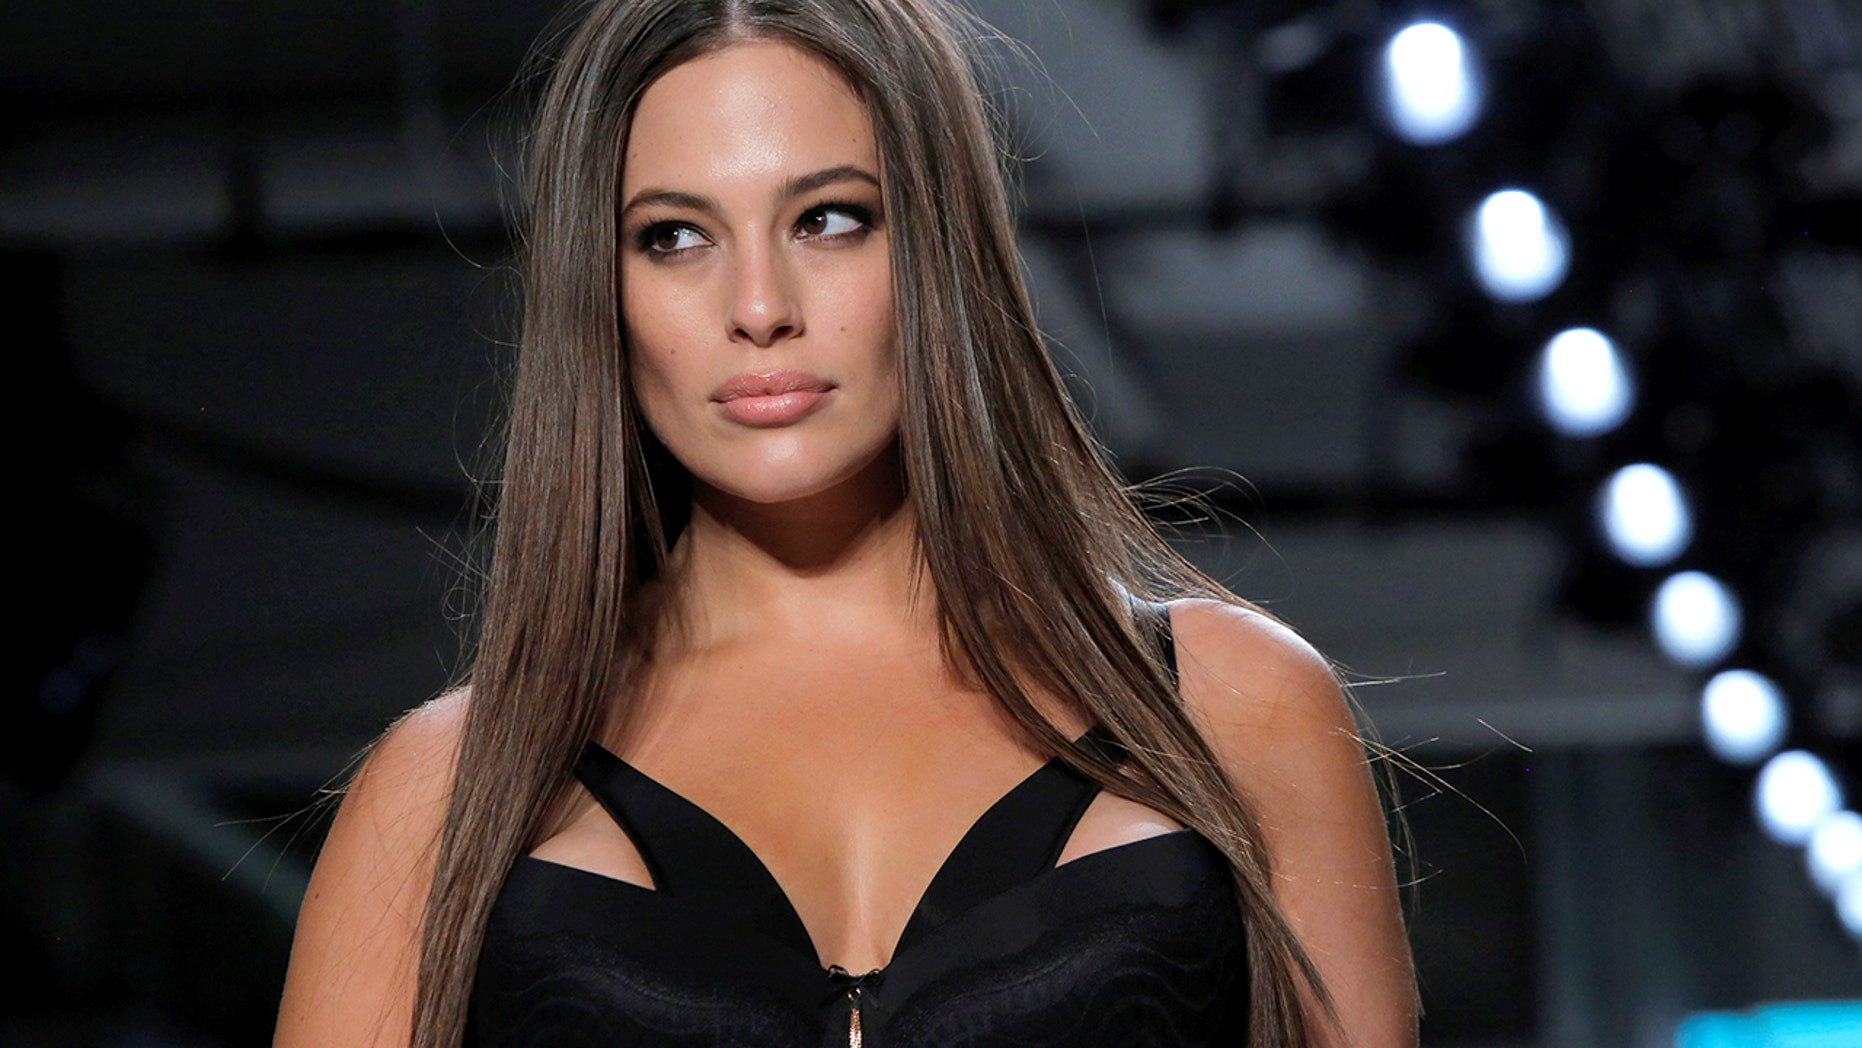 "Ashley Graham believes in the supernatural. The model told <a href=""https://www.usmagazine.com/celebrity-news/news/ashley-graham-25-things-you-dont-know-about-me/"" target=""_blank"">Us Weekly</a> she believes in mermaids and aliens. ""I watch alien and mermaid videos on YouTube. I believe they exist somewhere!"""